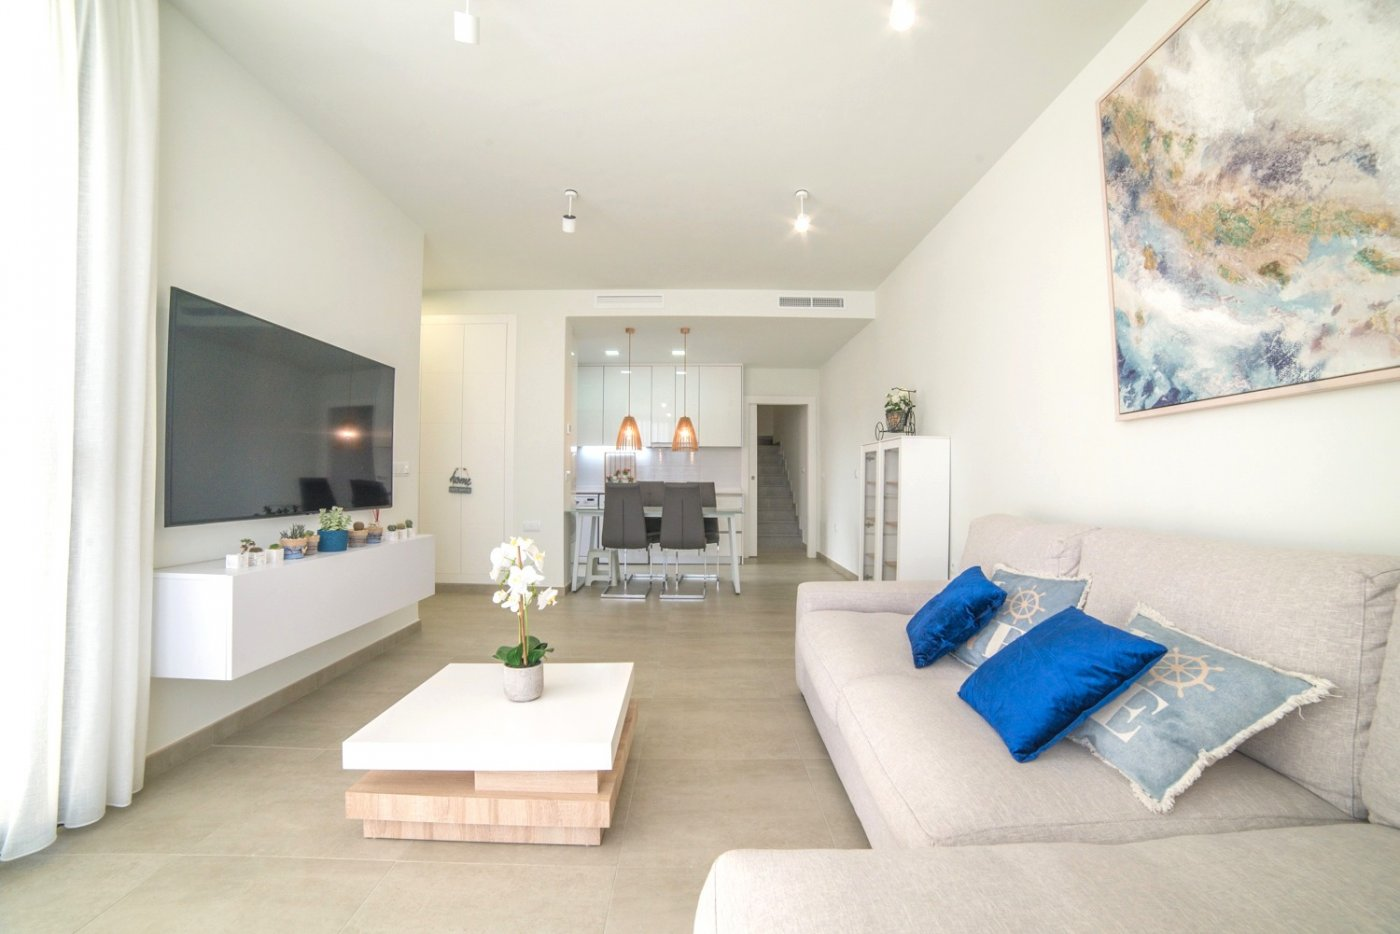 Gallery Image 7 of Premium semi-detached villa with swimming pool at a very competitive price